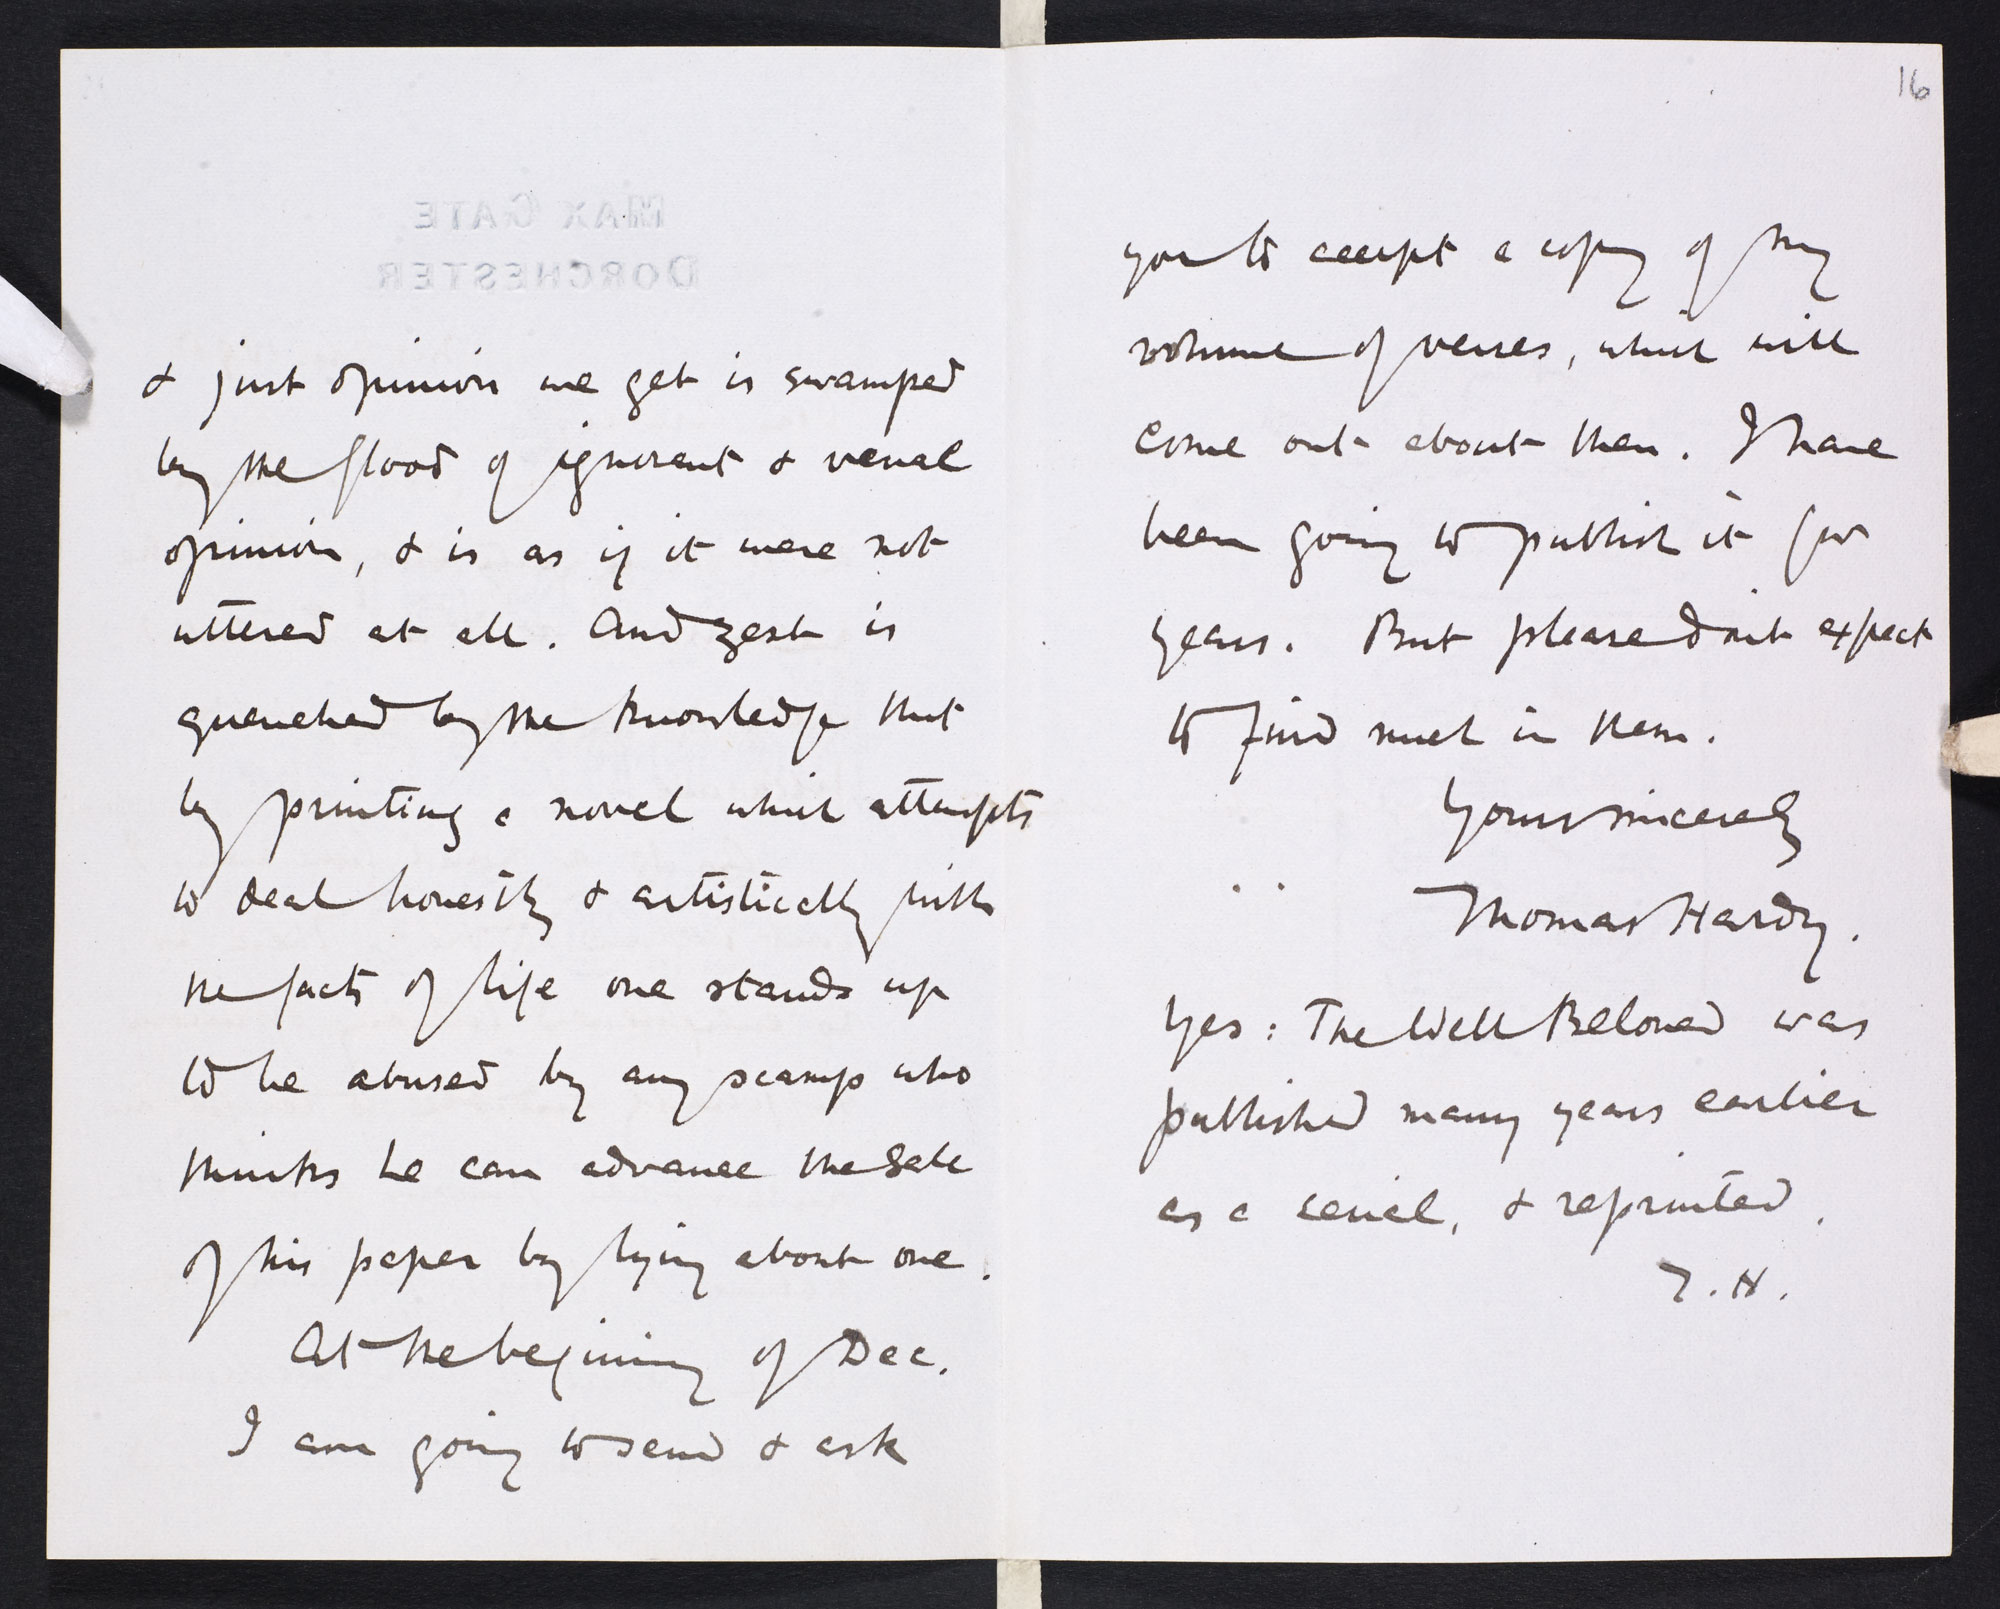 Letter from Thomas Hardy to William Archer [folio: ff. 15v-16r]